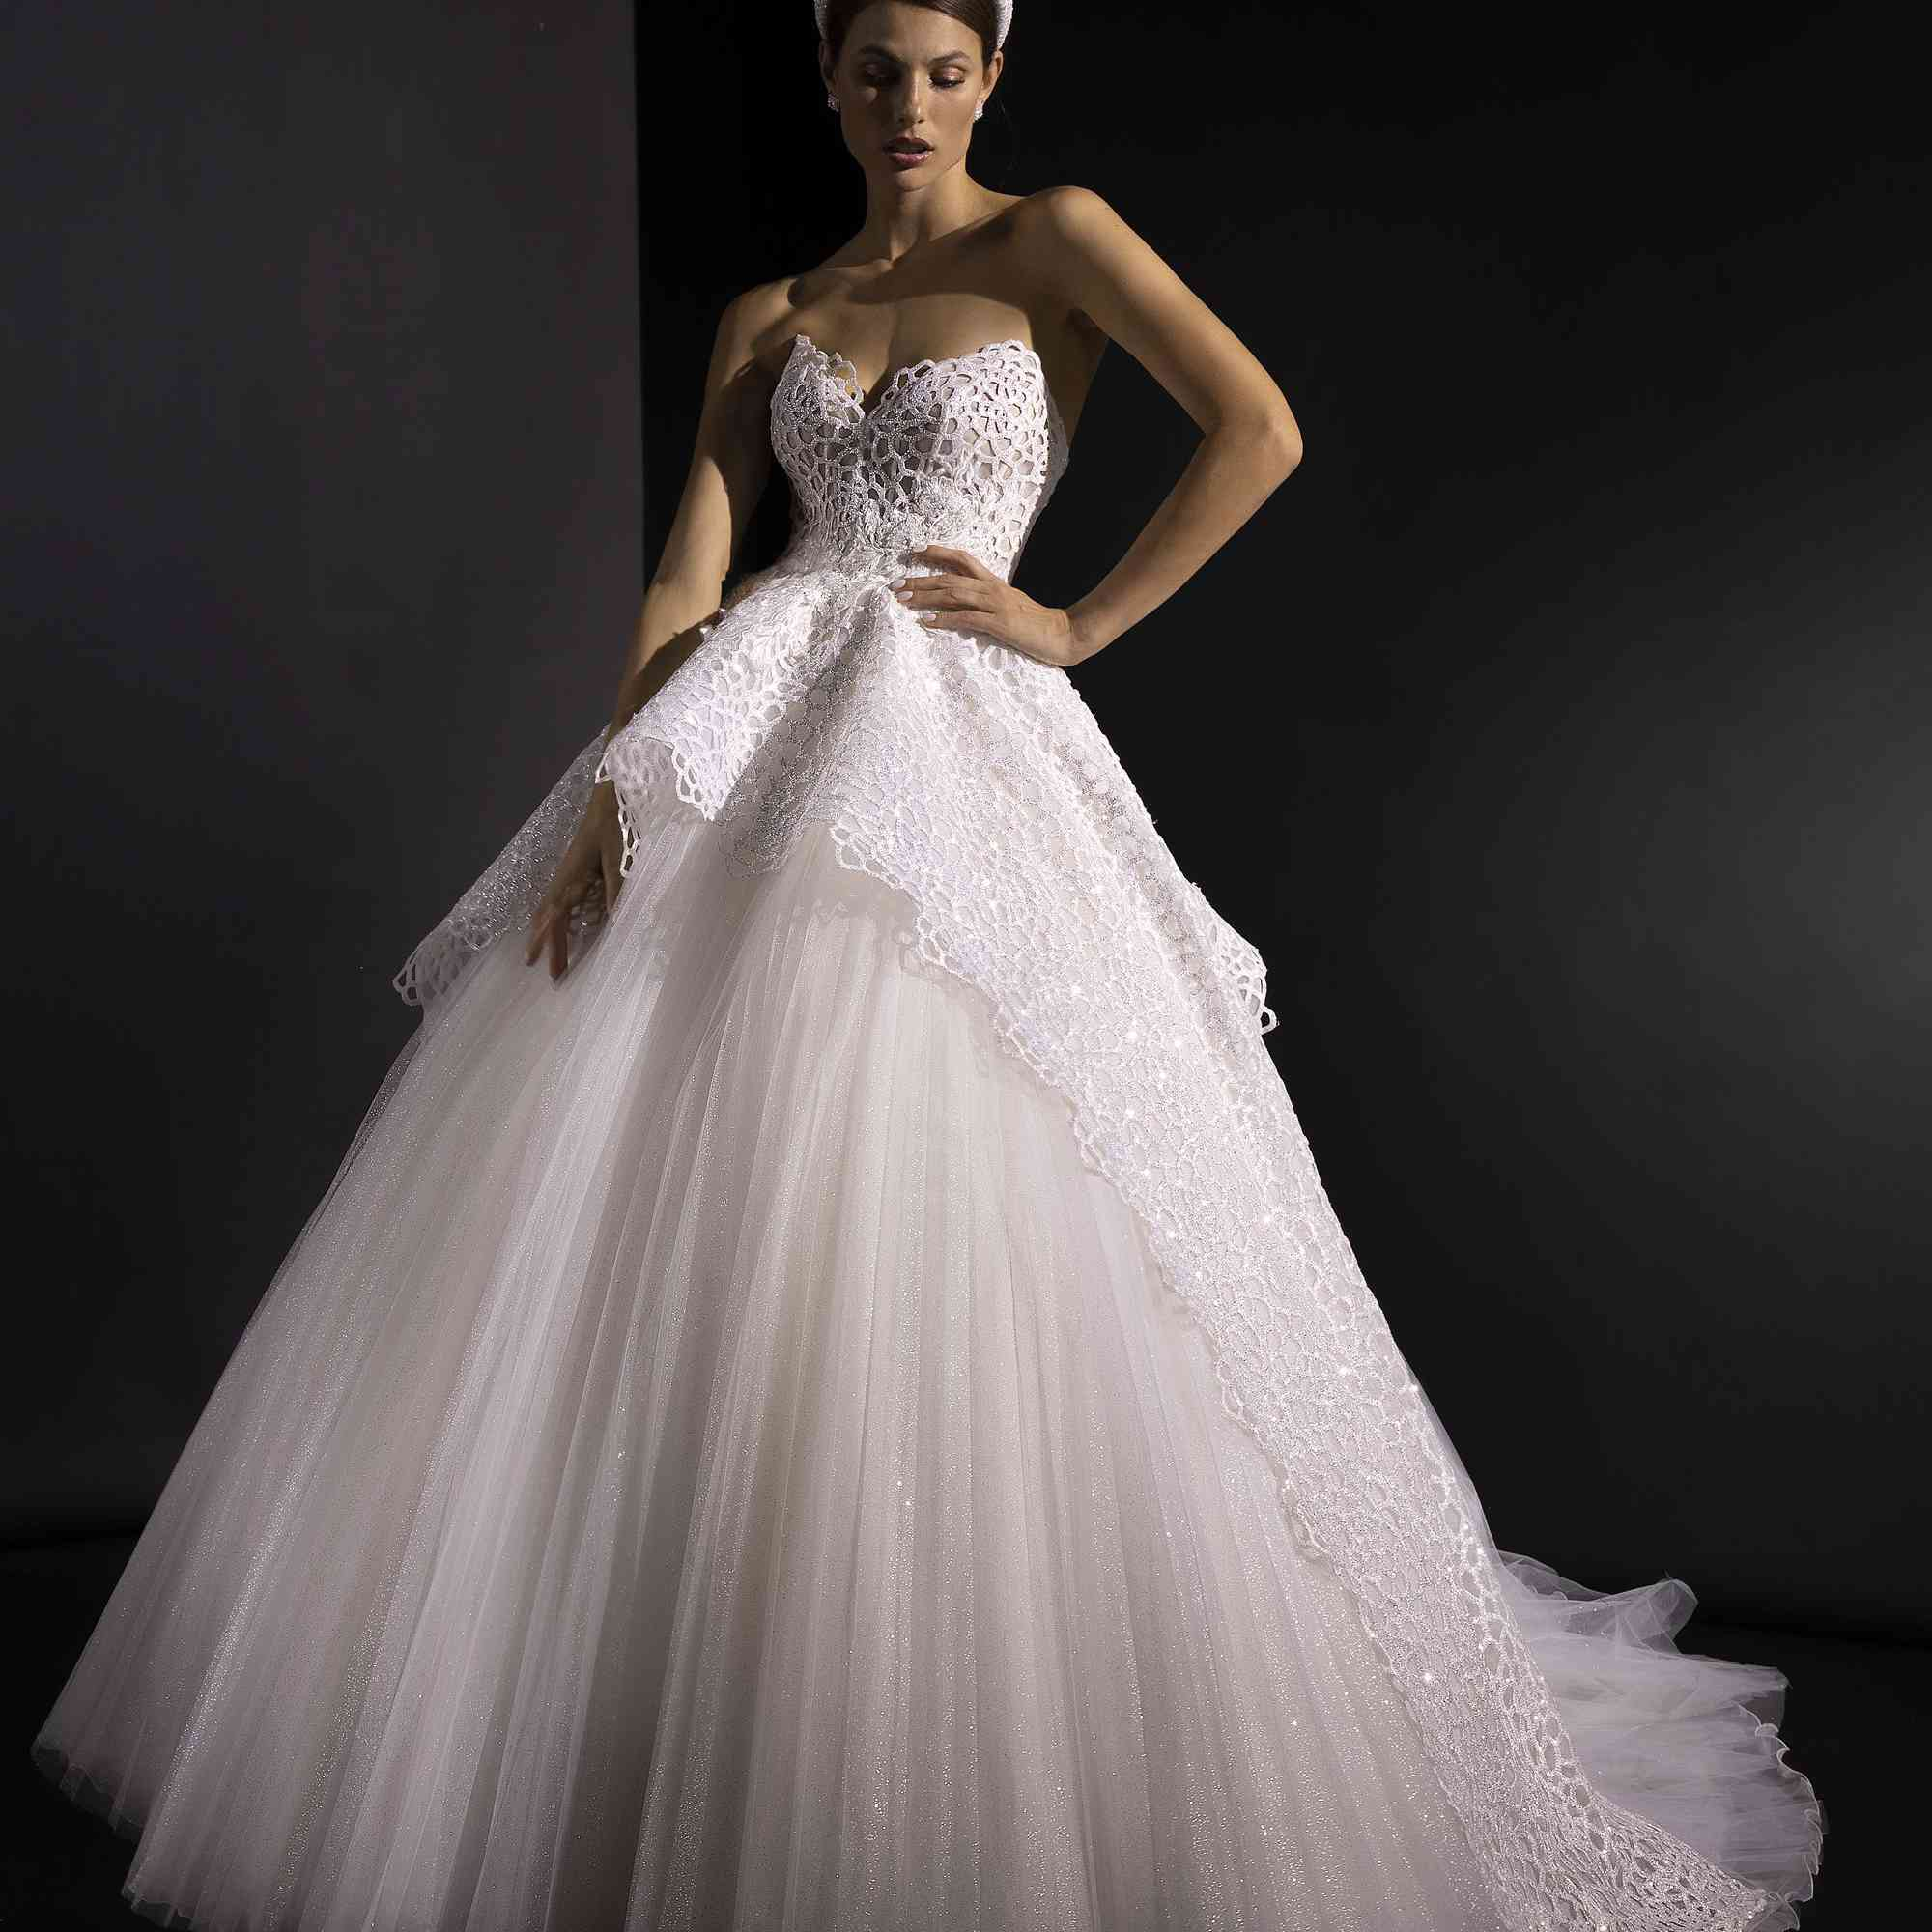 Model in strapless ballgown with tulle skirt and lacy bodice